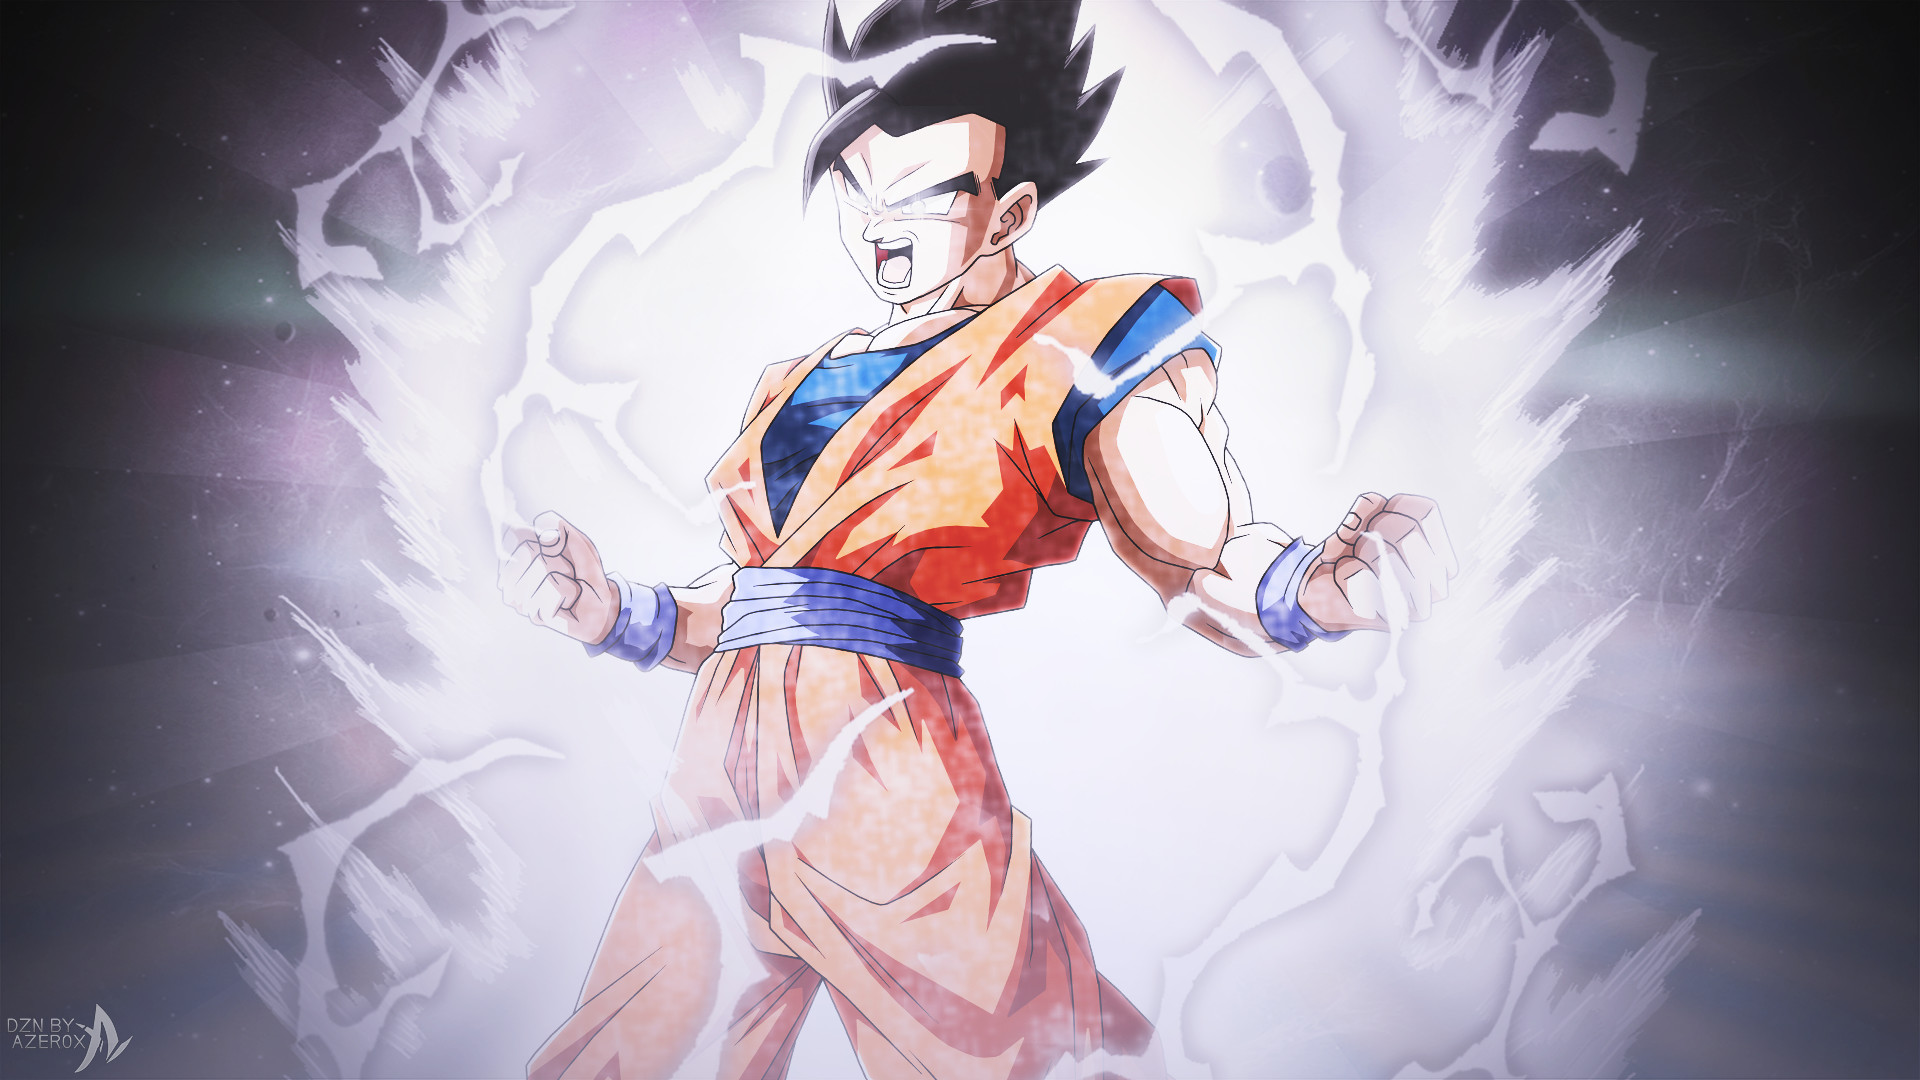 Res: 1920x1080, ... ULTIMATE GOHAN, THE POTENTIAL UNLEASHED ! by Azer0xHD